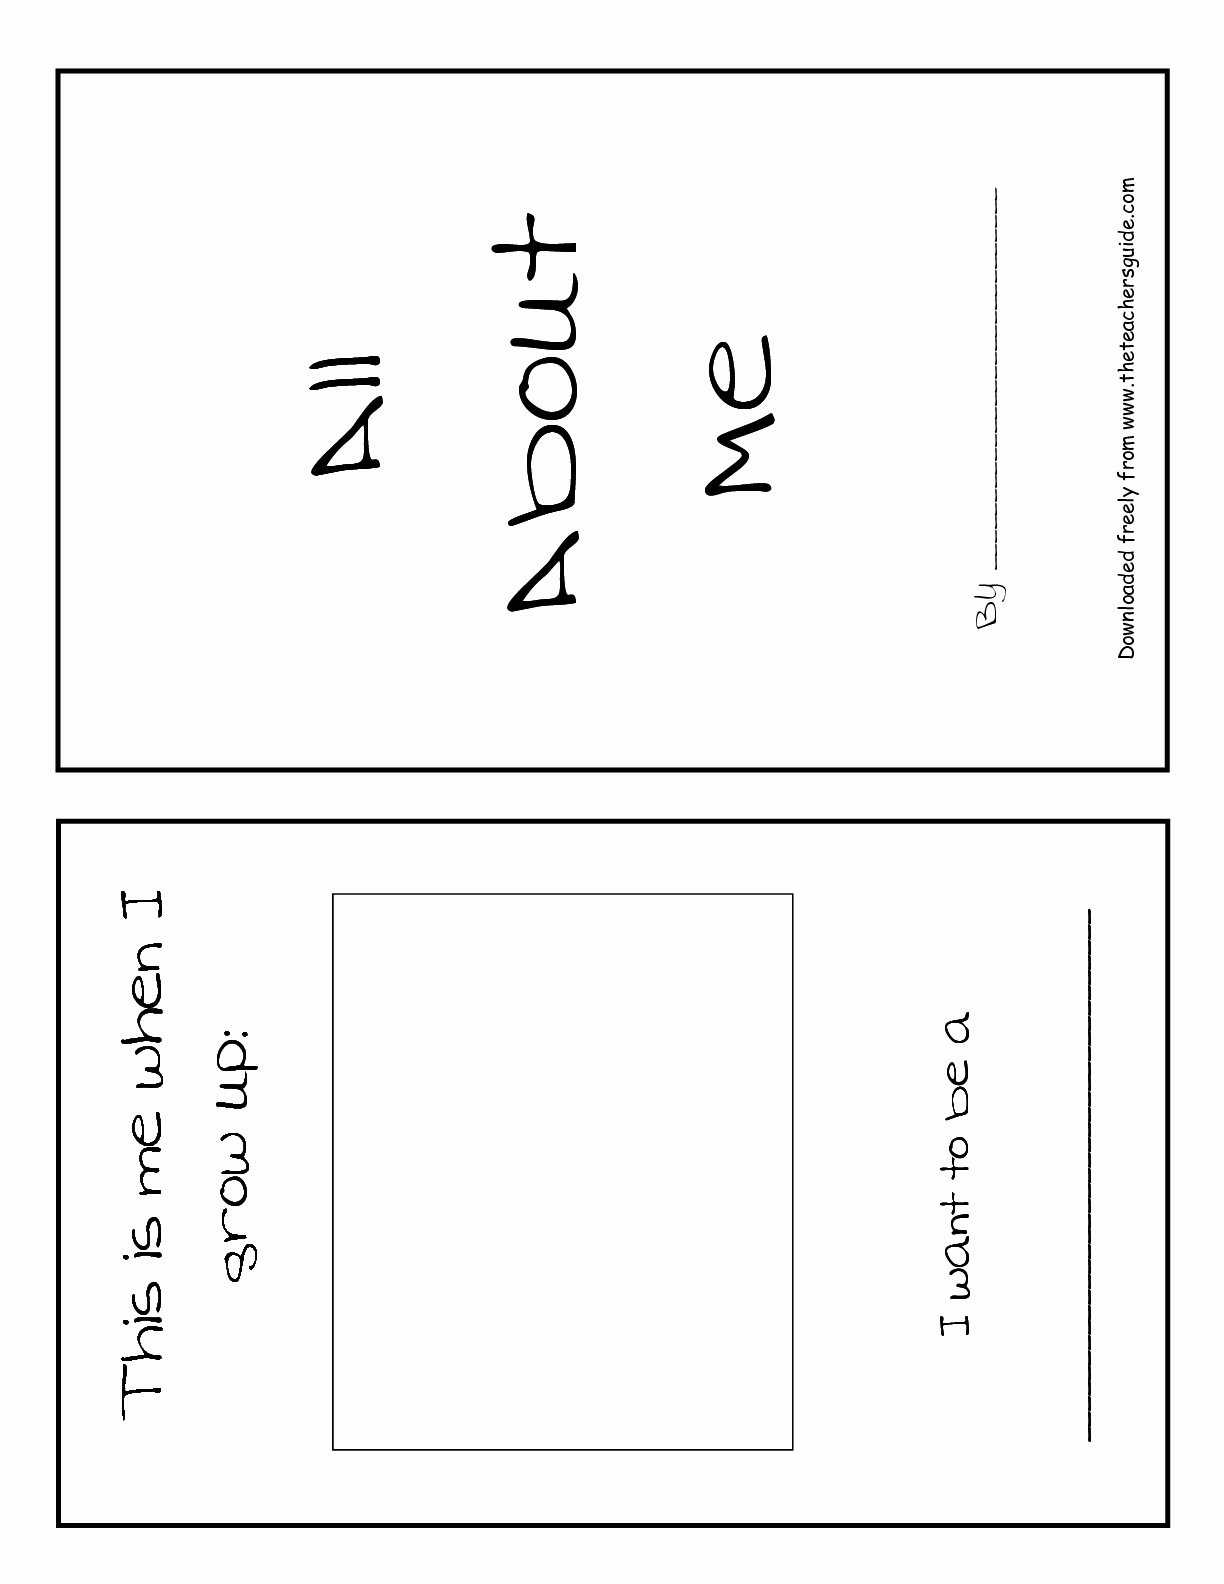 All About Me Printable Worksheet Fresh Back to School Printouts From the Teacher S Guide